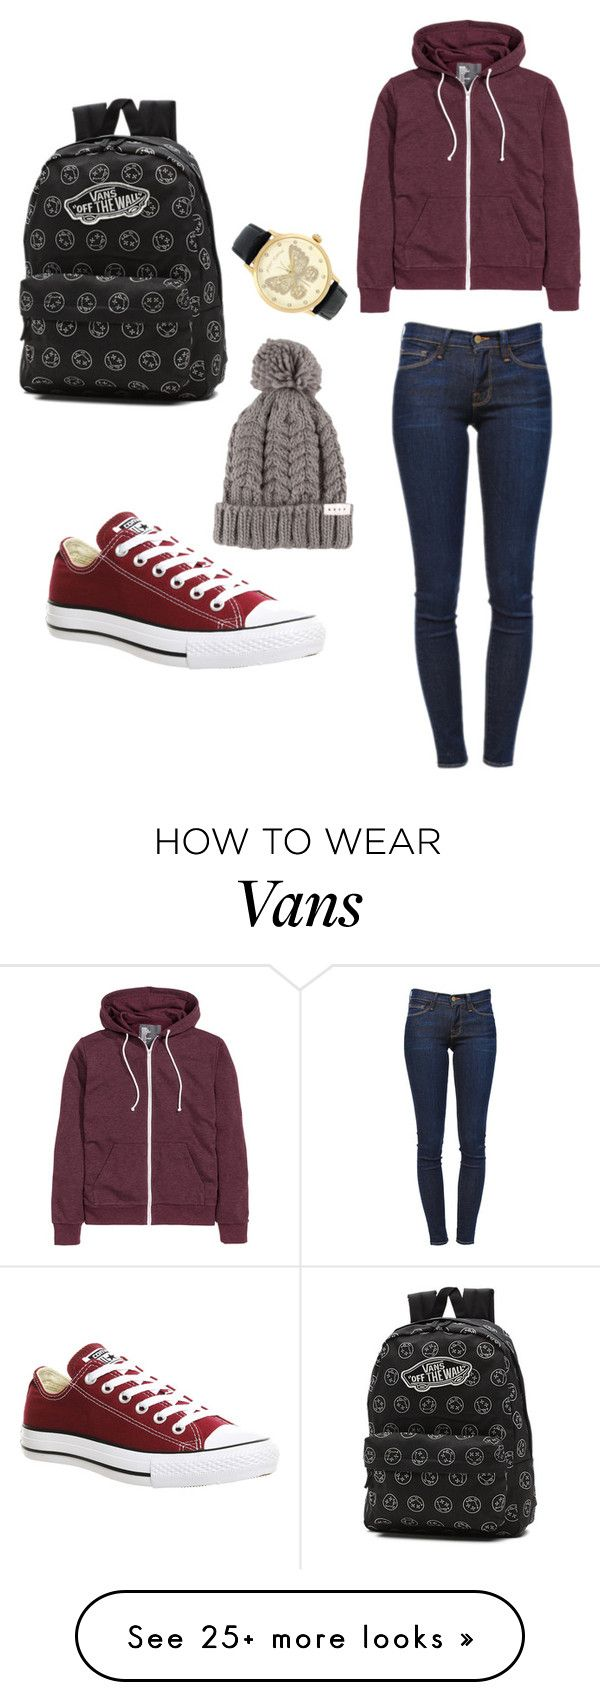 """Maroon Outfit for School"" by casandra-ramos on Polyvore featuring Frame Denim, Converse, Vans and Betsey Johnson"